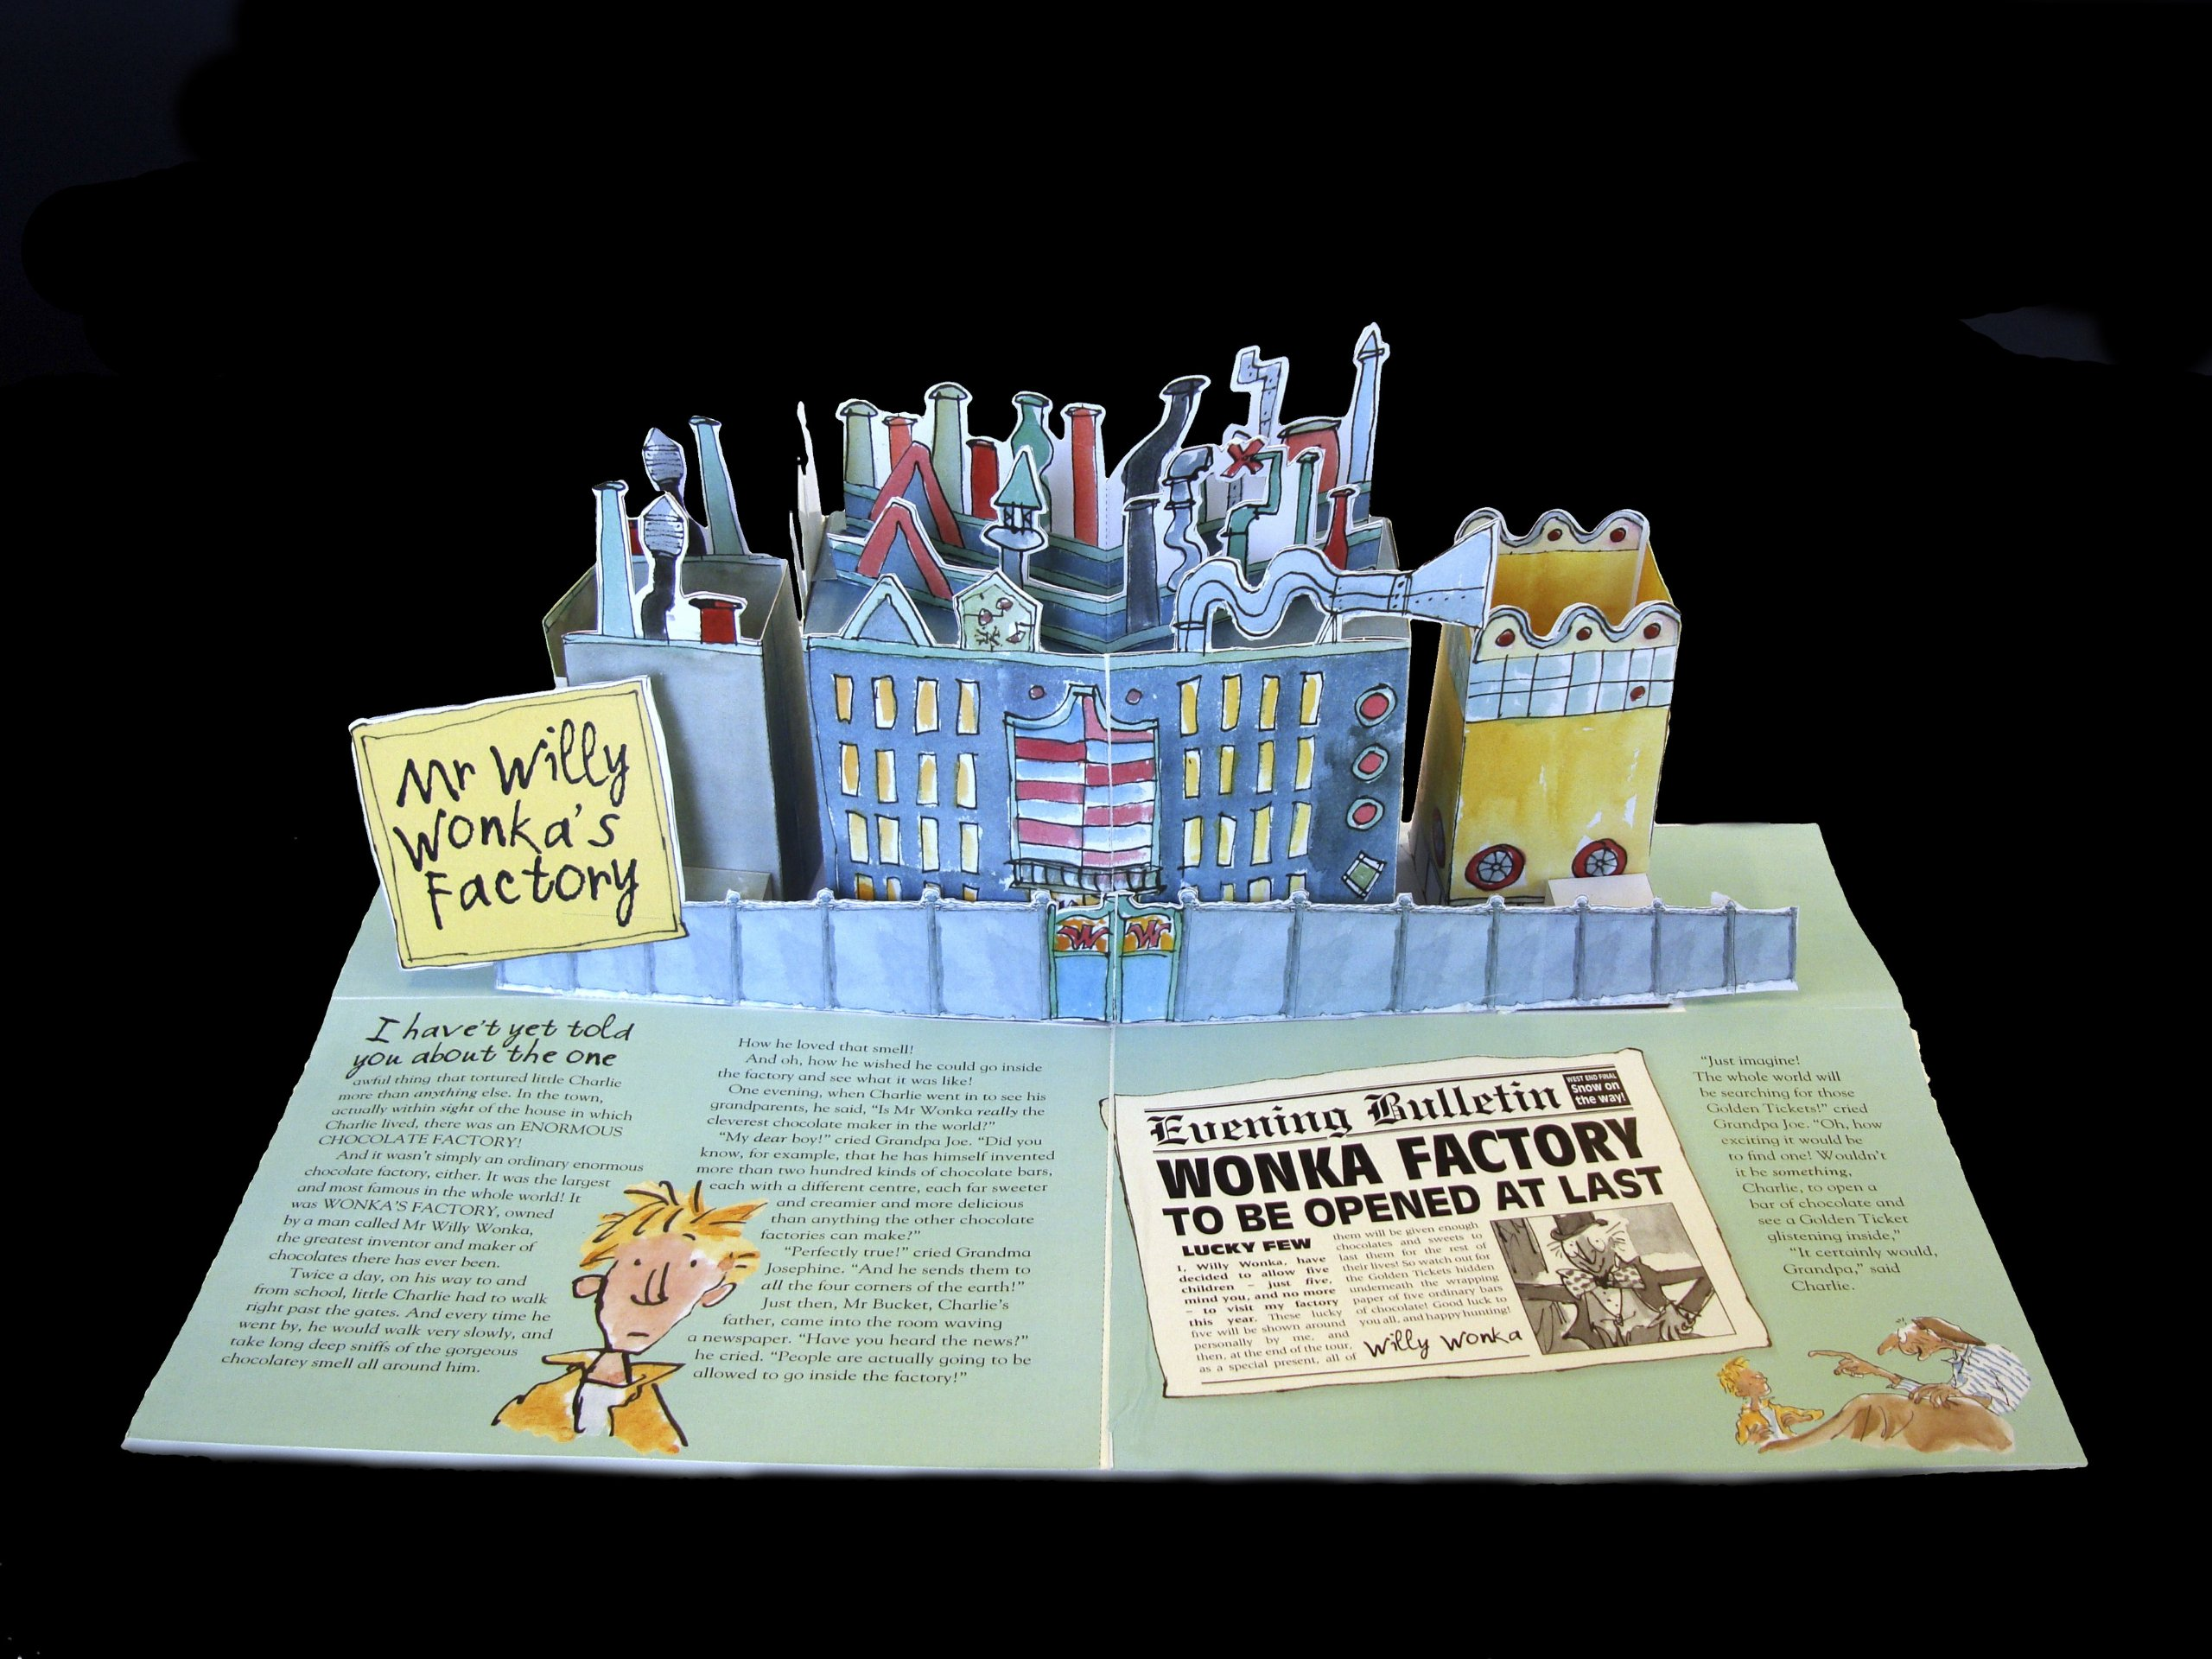 charlie and the chocolate factory pop up book roald dahl penguin  charlie and the chocolate factory pop up book roald dahl penguin modern classics roald dahl 9780141328874 amazon com books